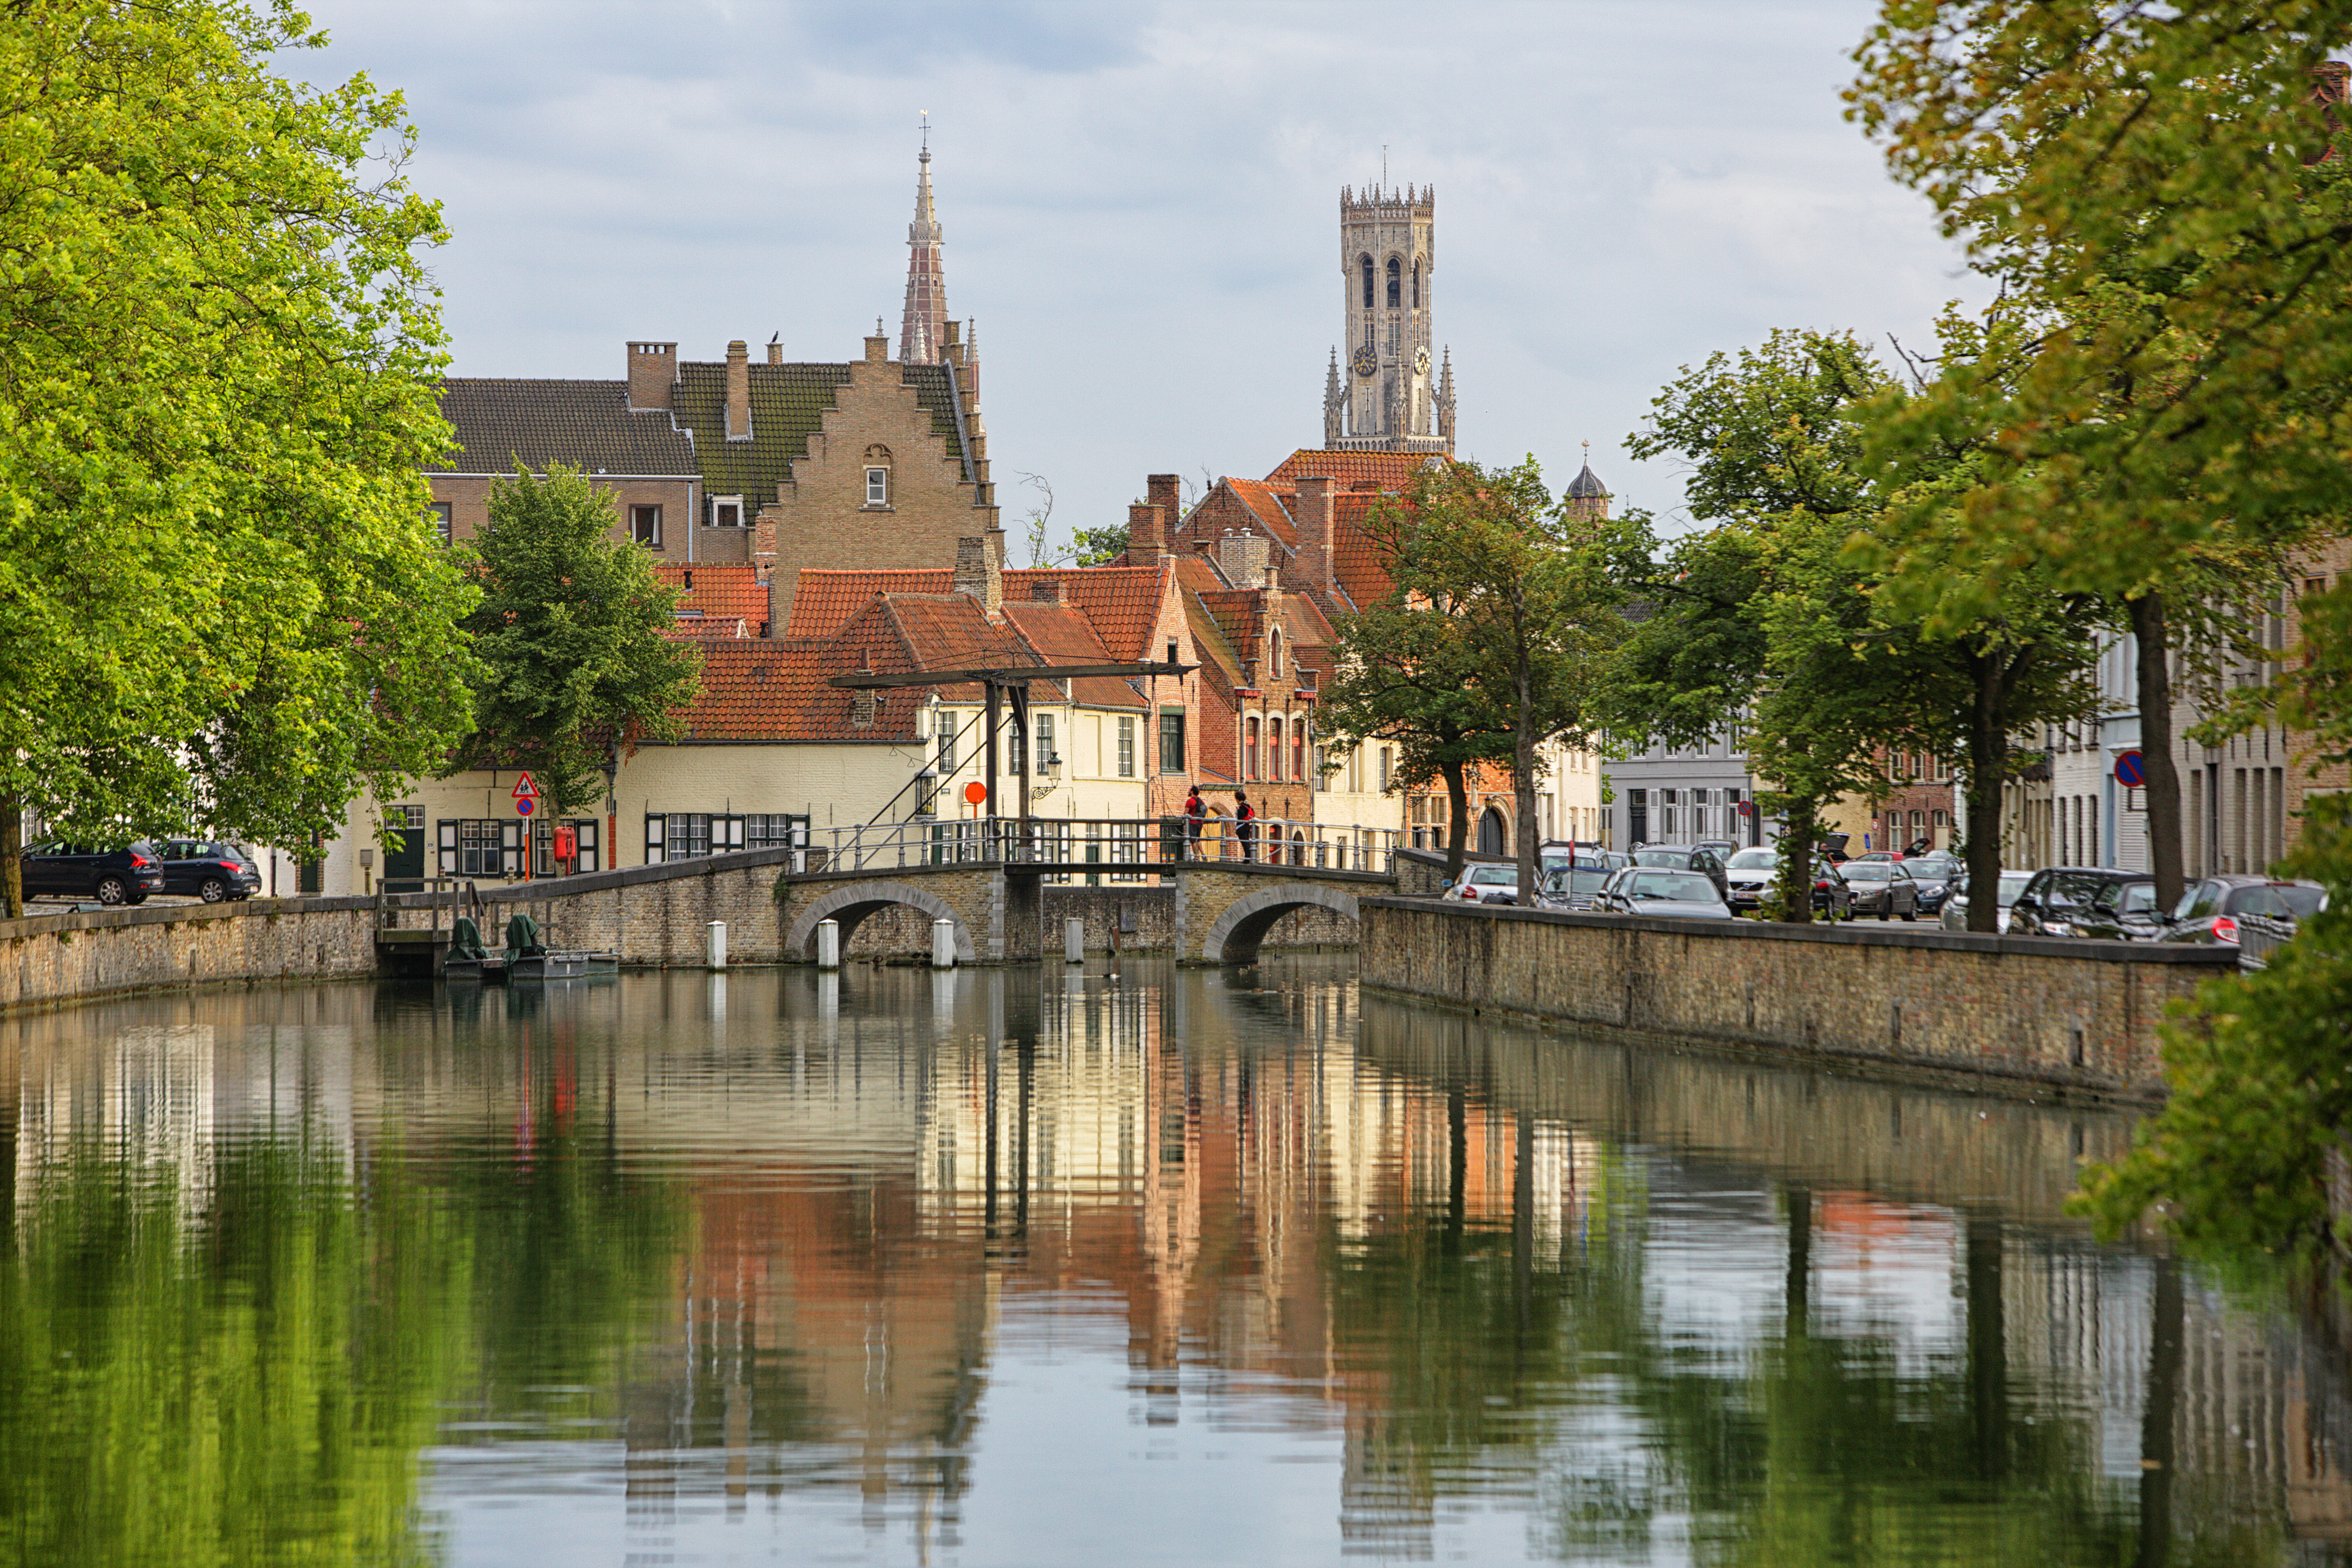 Belgium, Bruges, Churches reflecting in canals